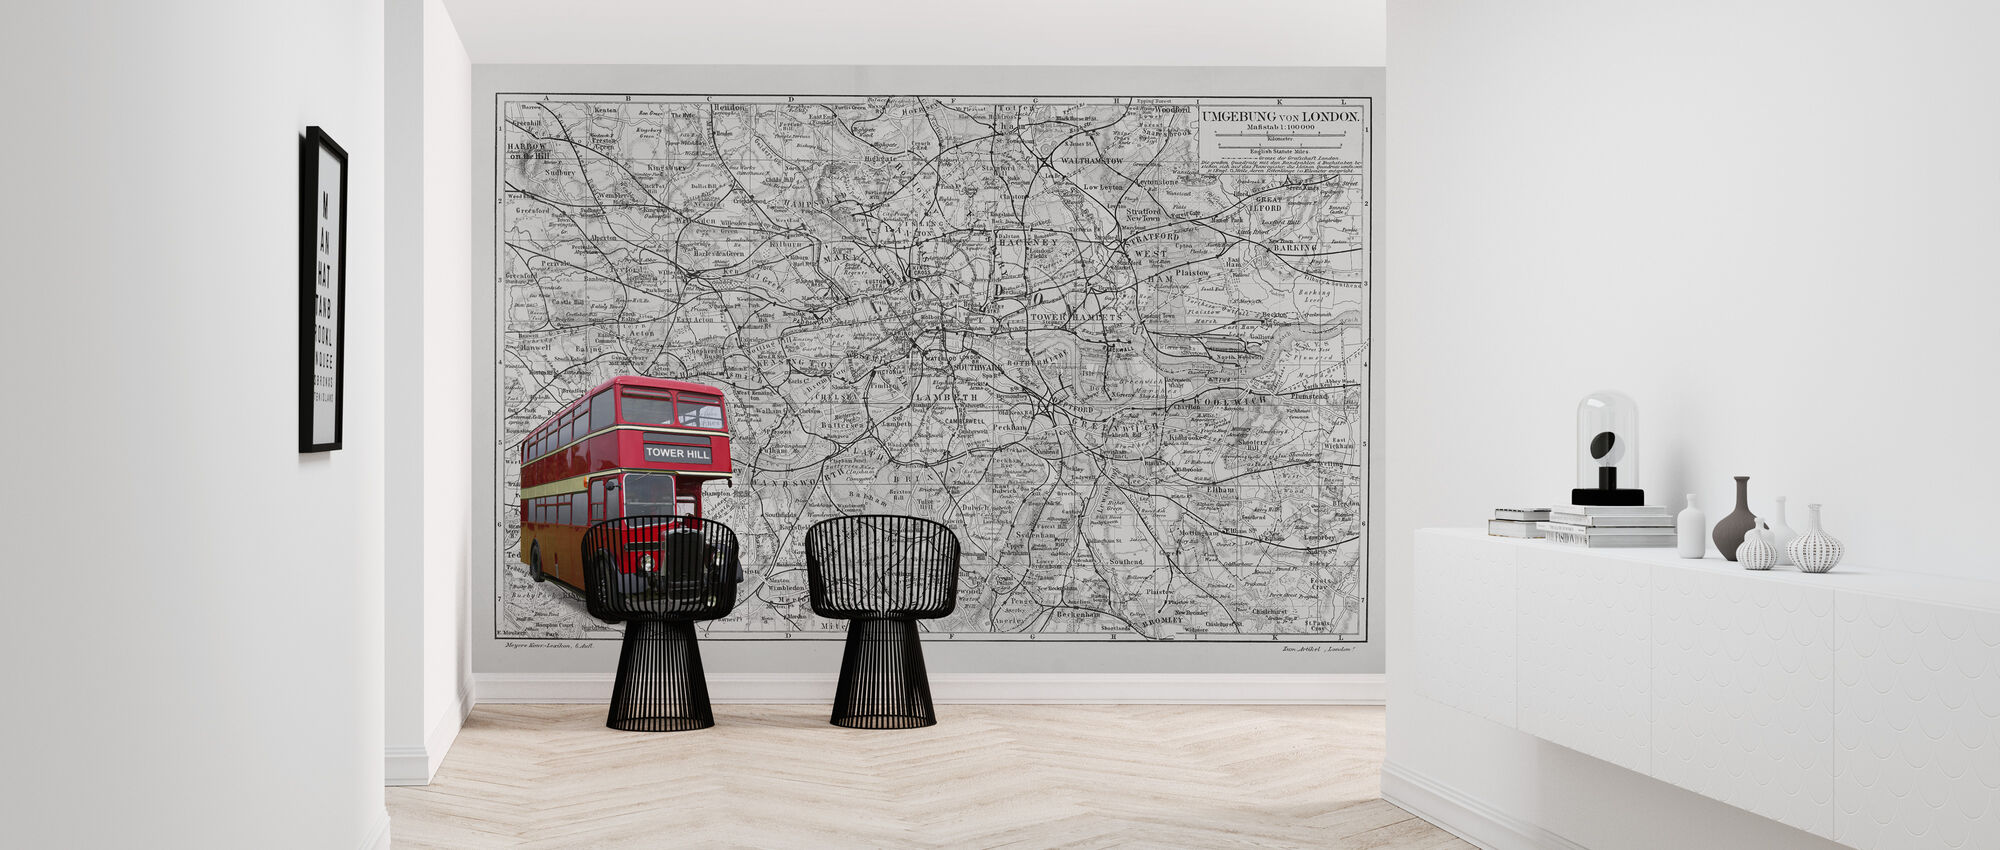 London Map with Bus - Colorsplash - Wallpaper - Hallway